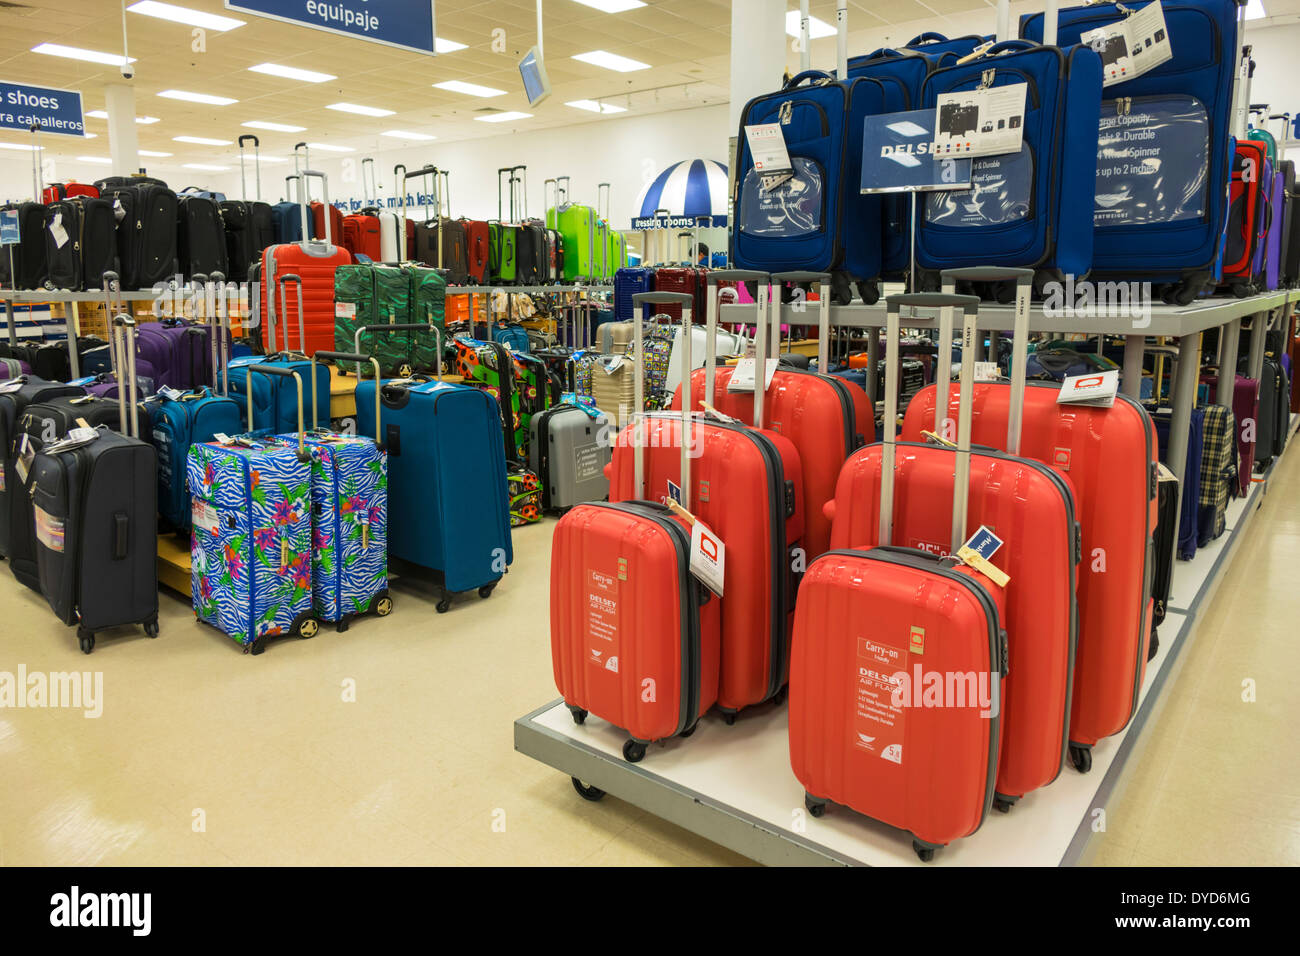 Discount Luggage Store | Luggage And Suitcases